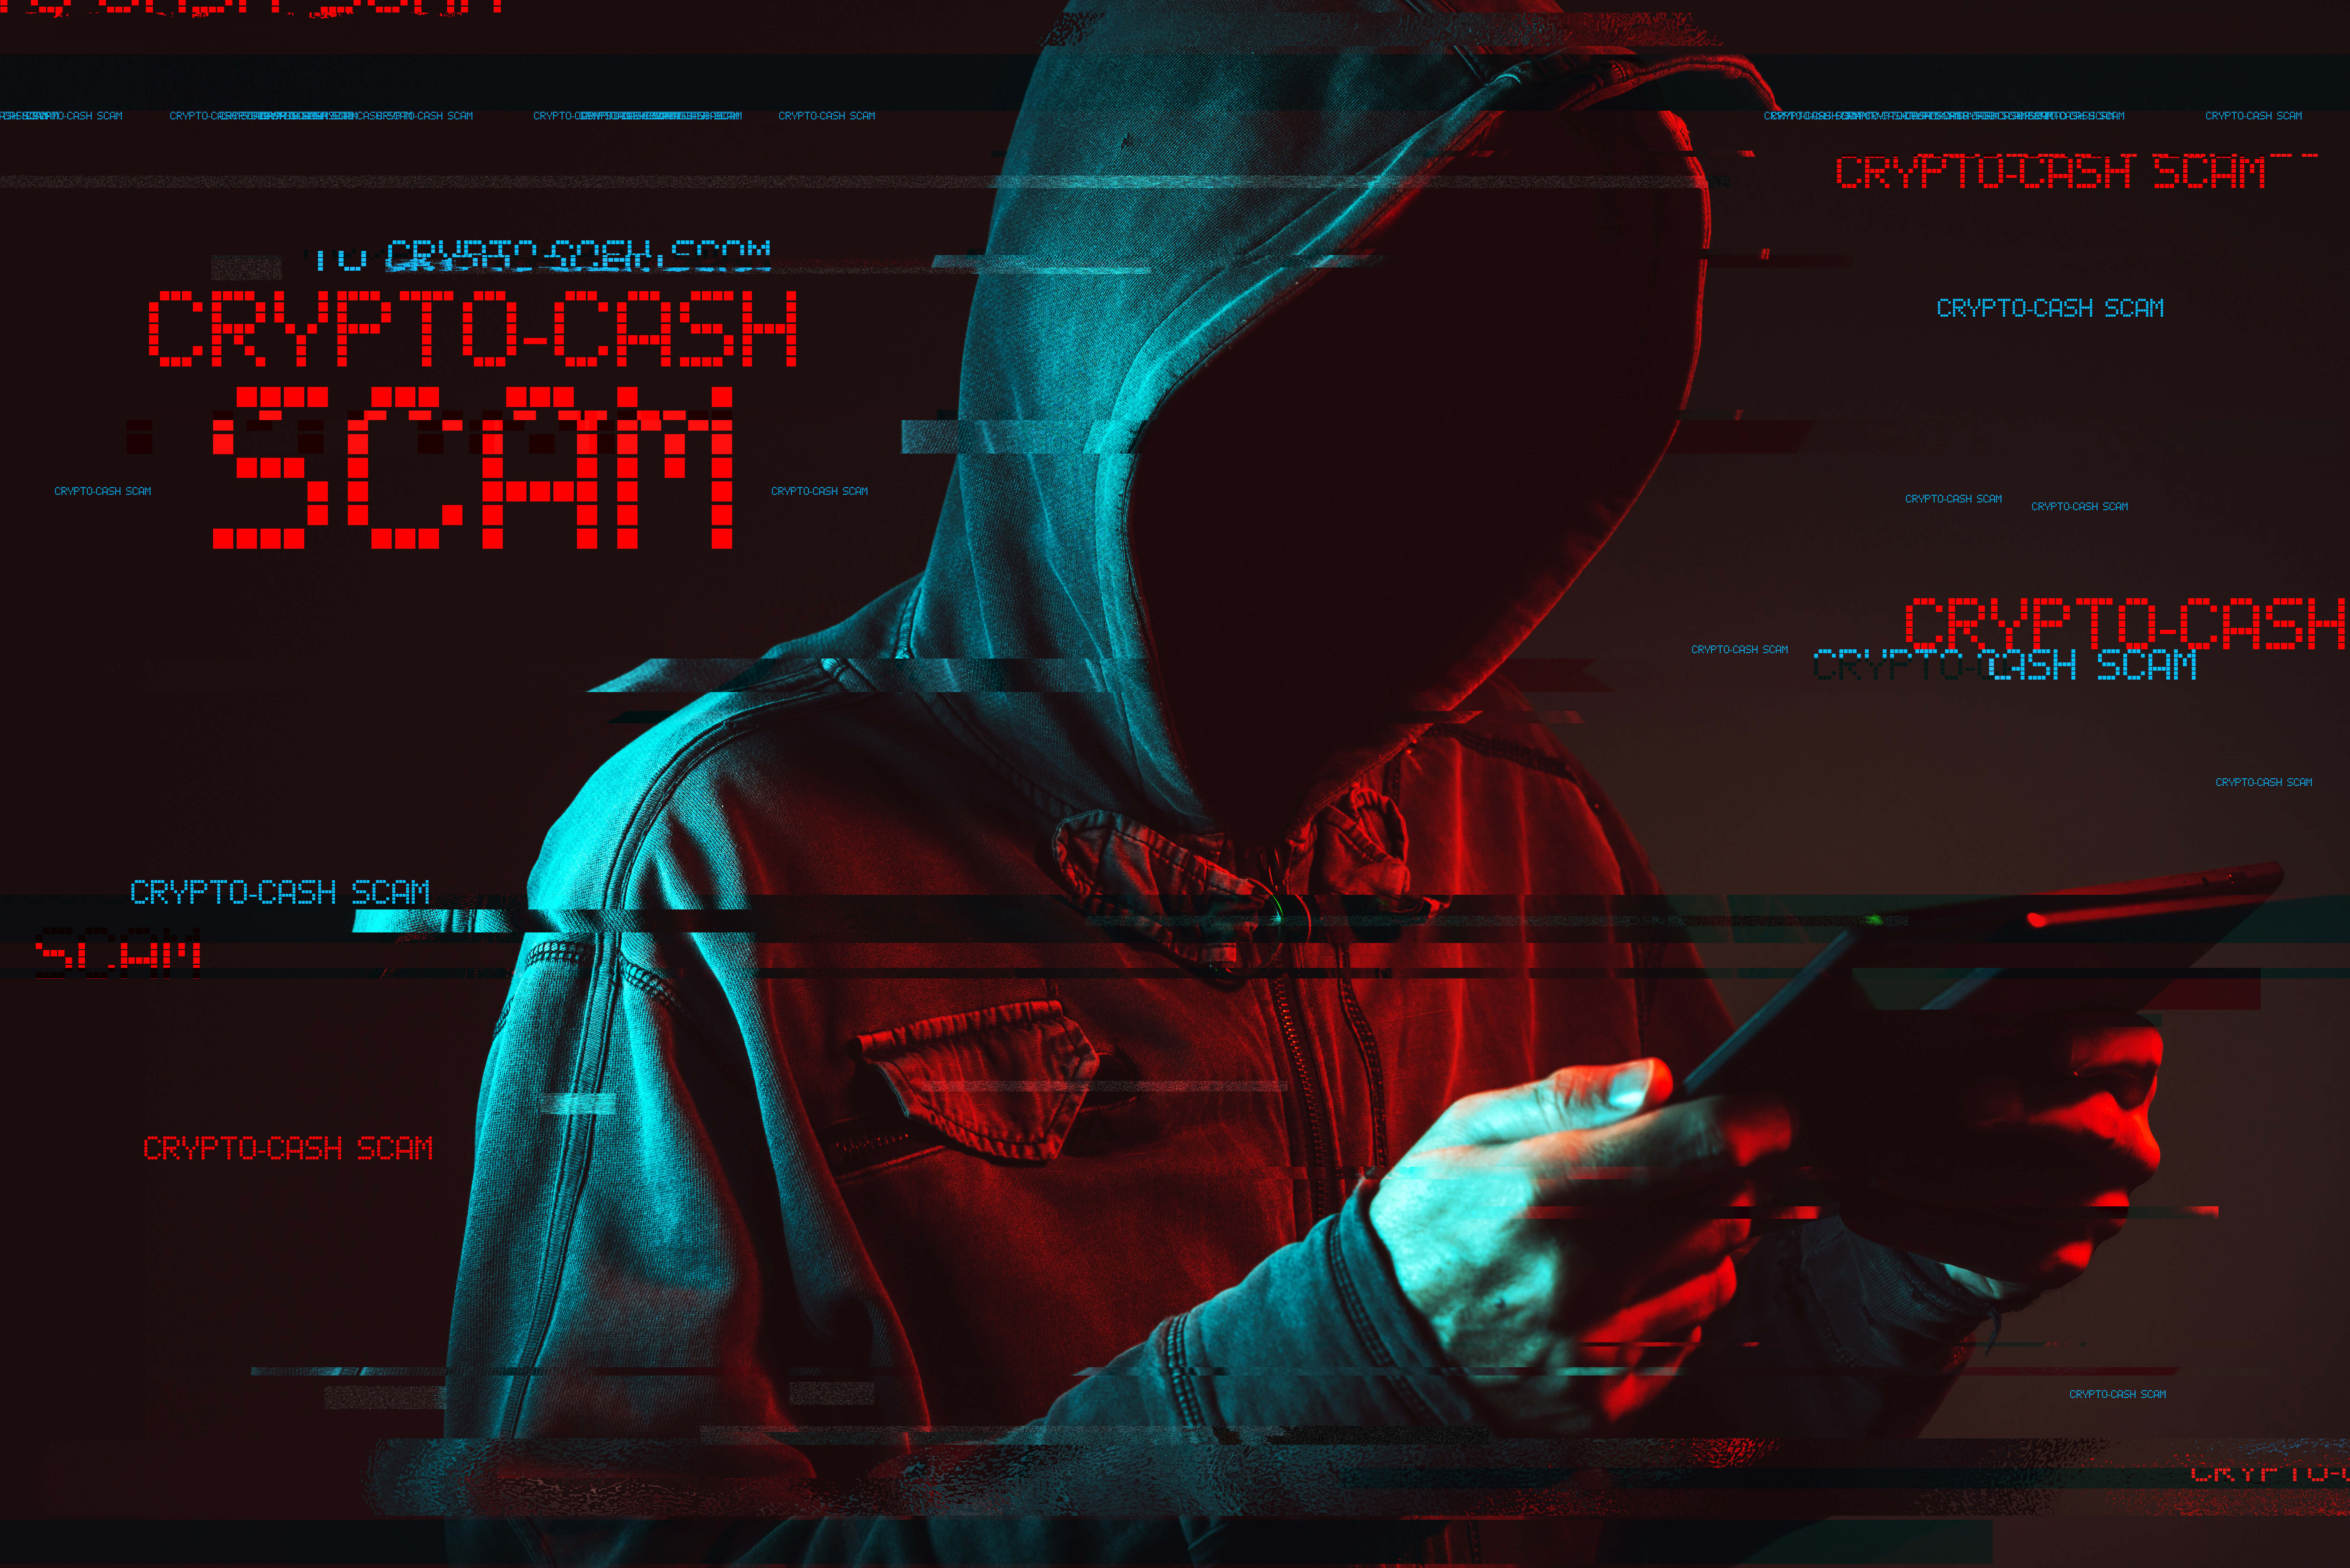 Swiss Online Bank Dukascopy Exposes a Russian Scam Clone